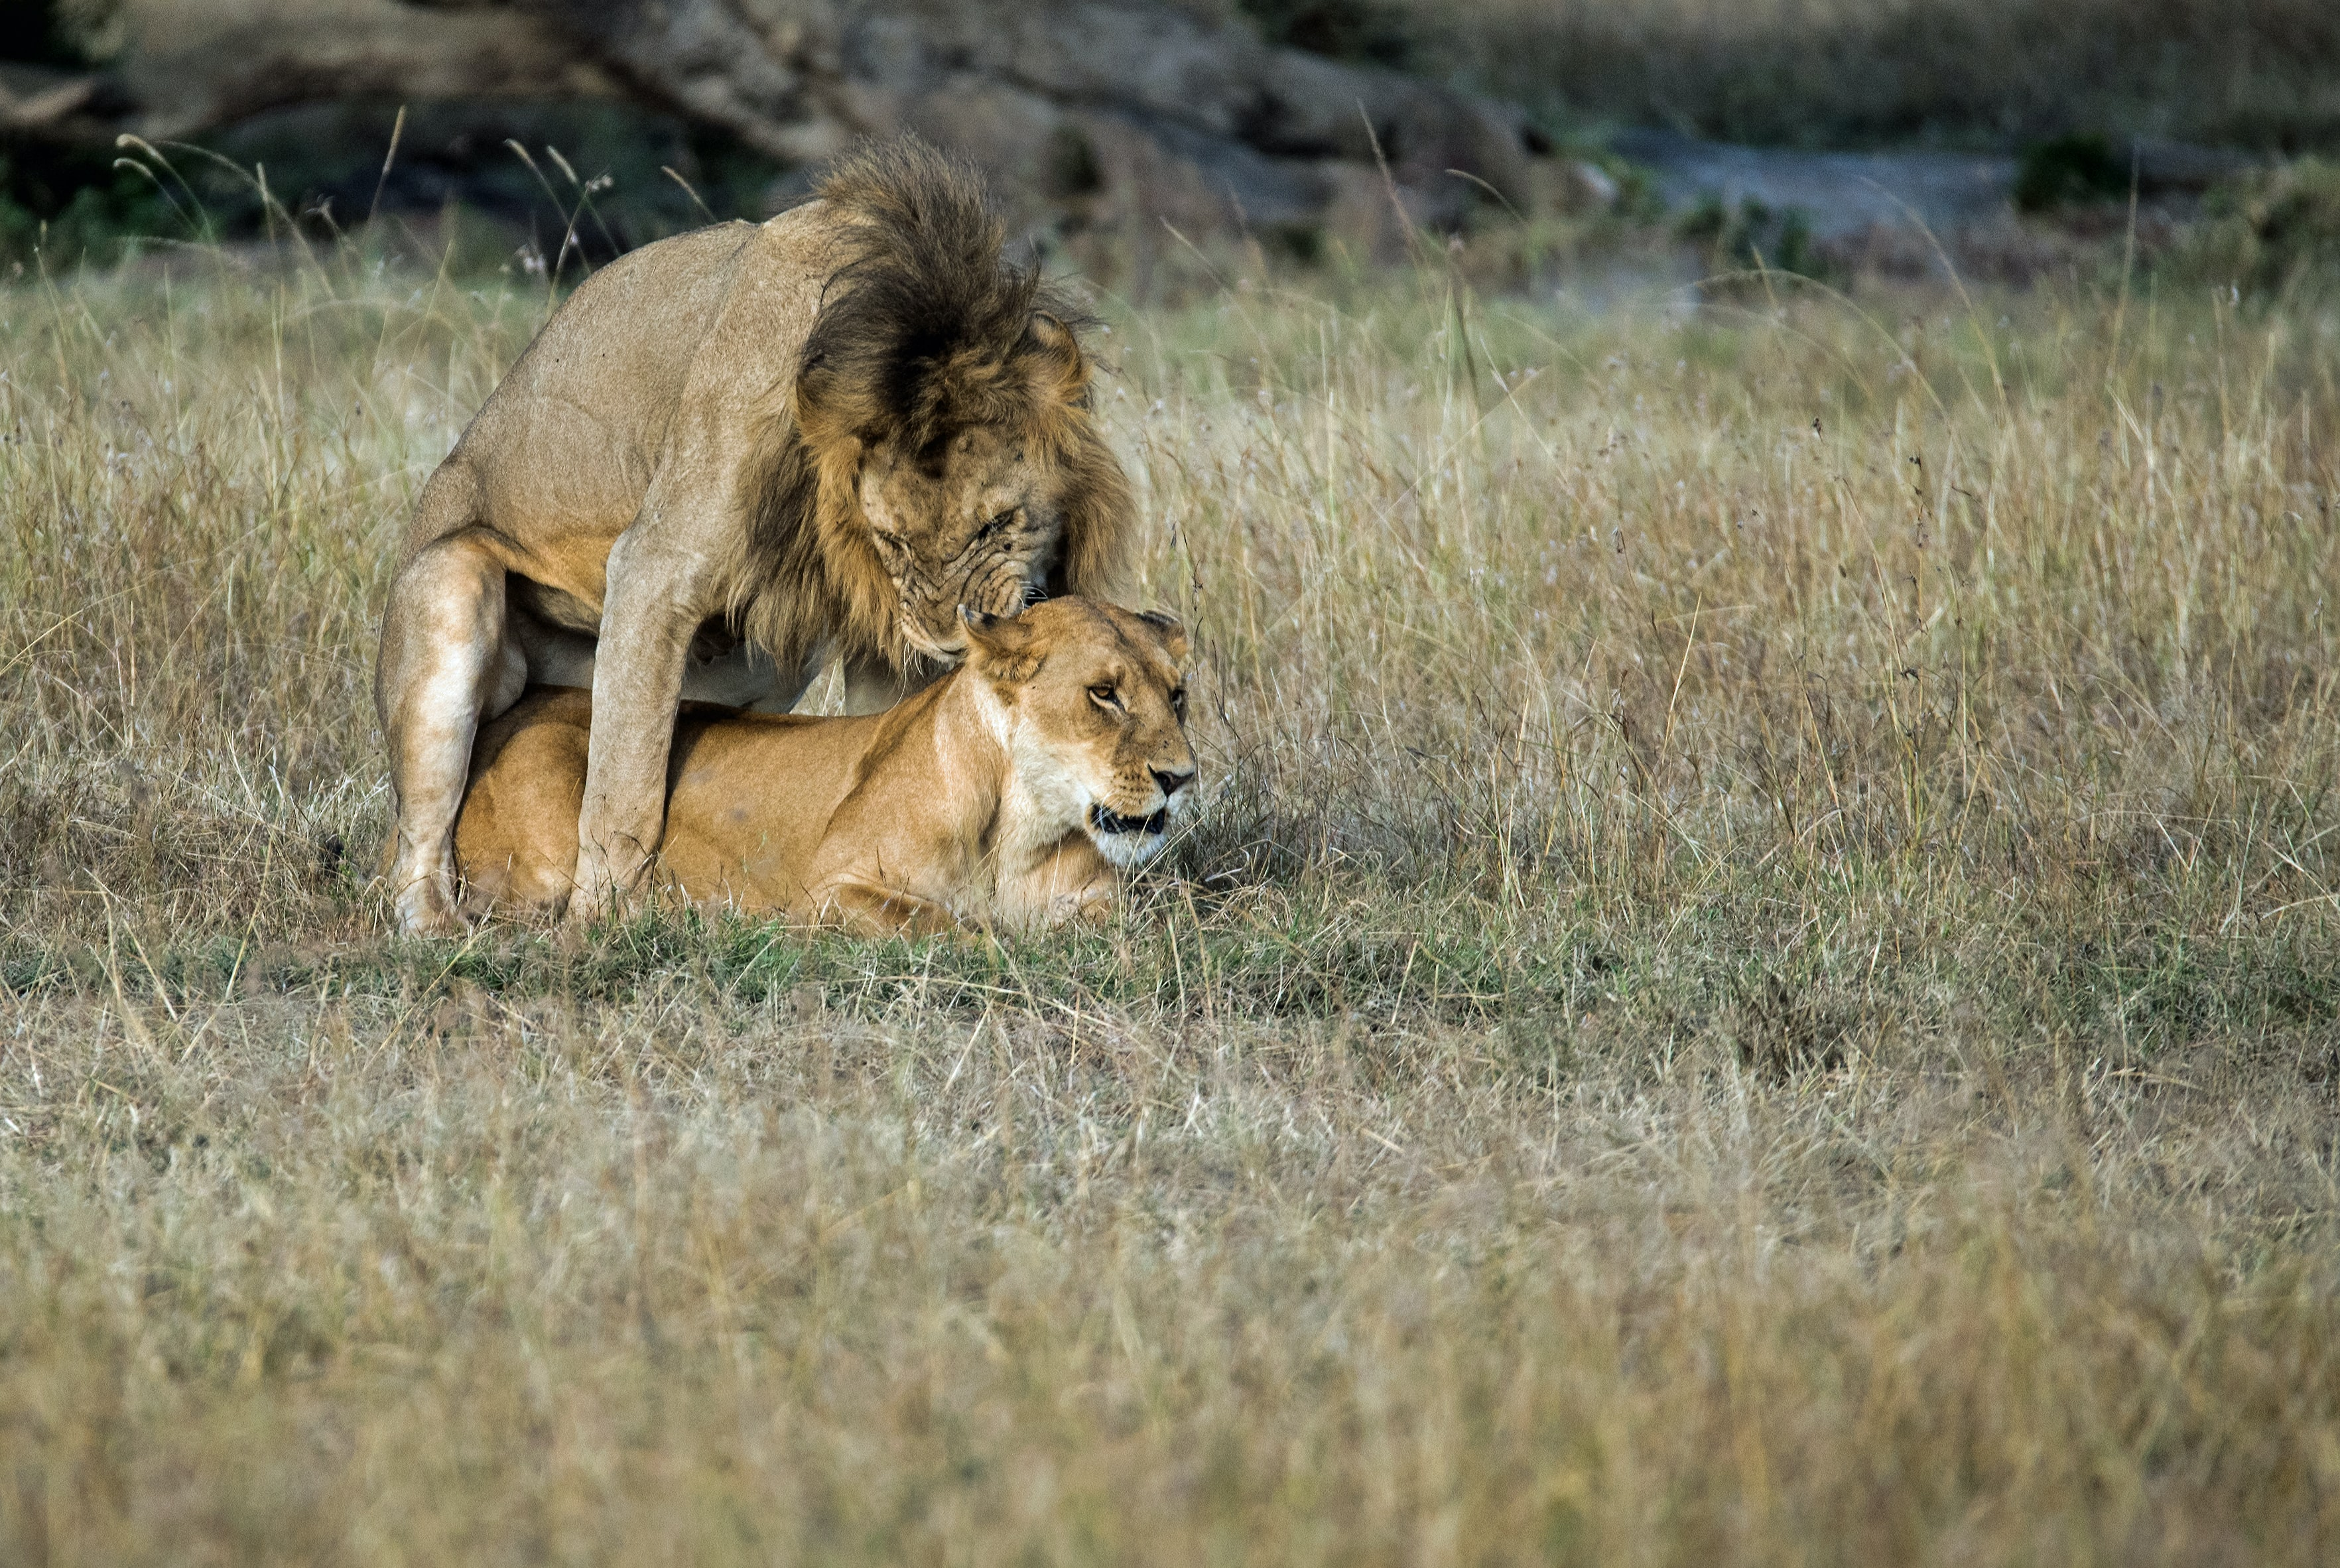 lion mating with lioness on field